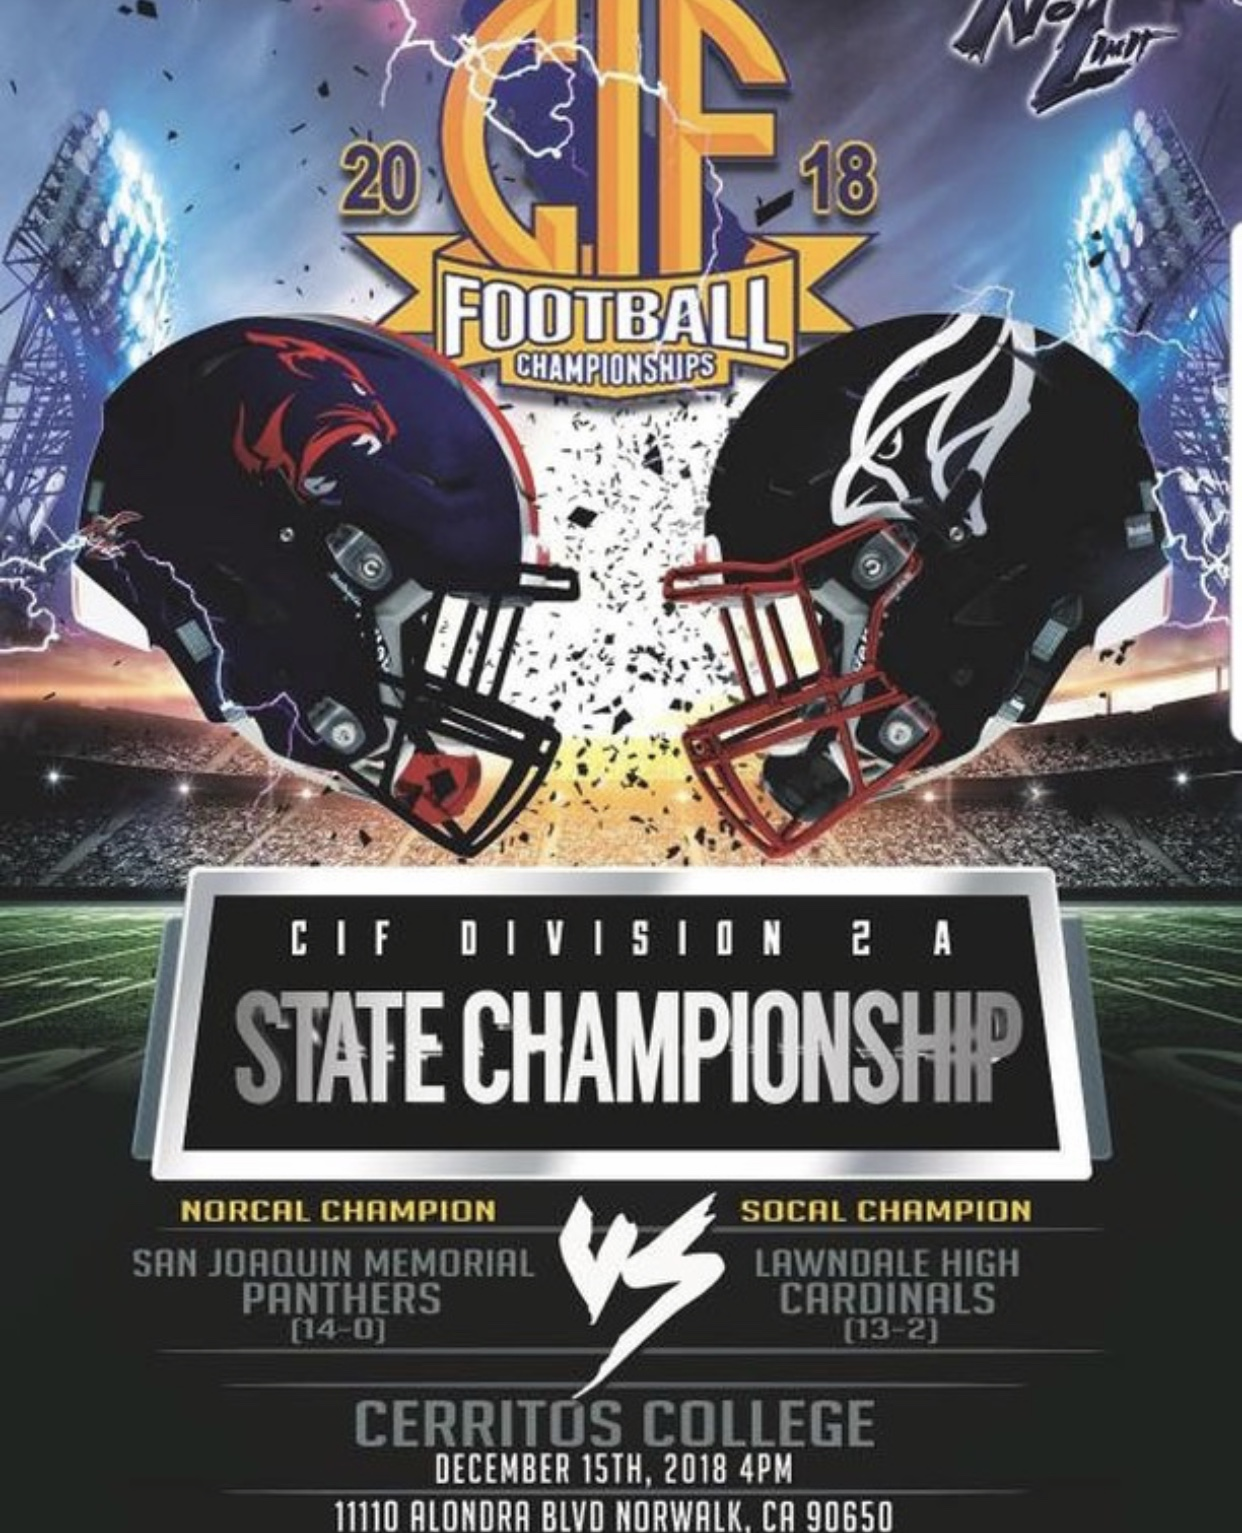 CIF State Championship Football Game: Saturday, 12/15 at 4:00pm @ Cerritos College